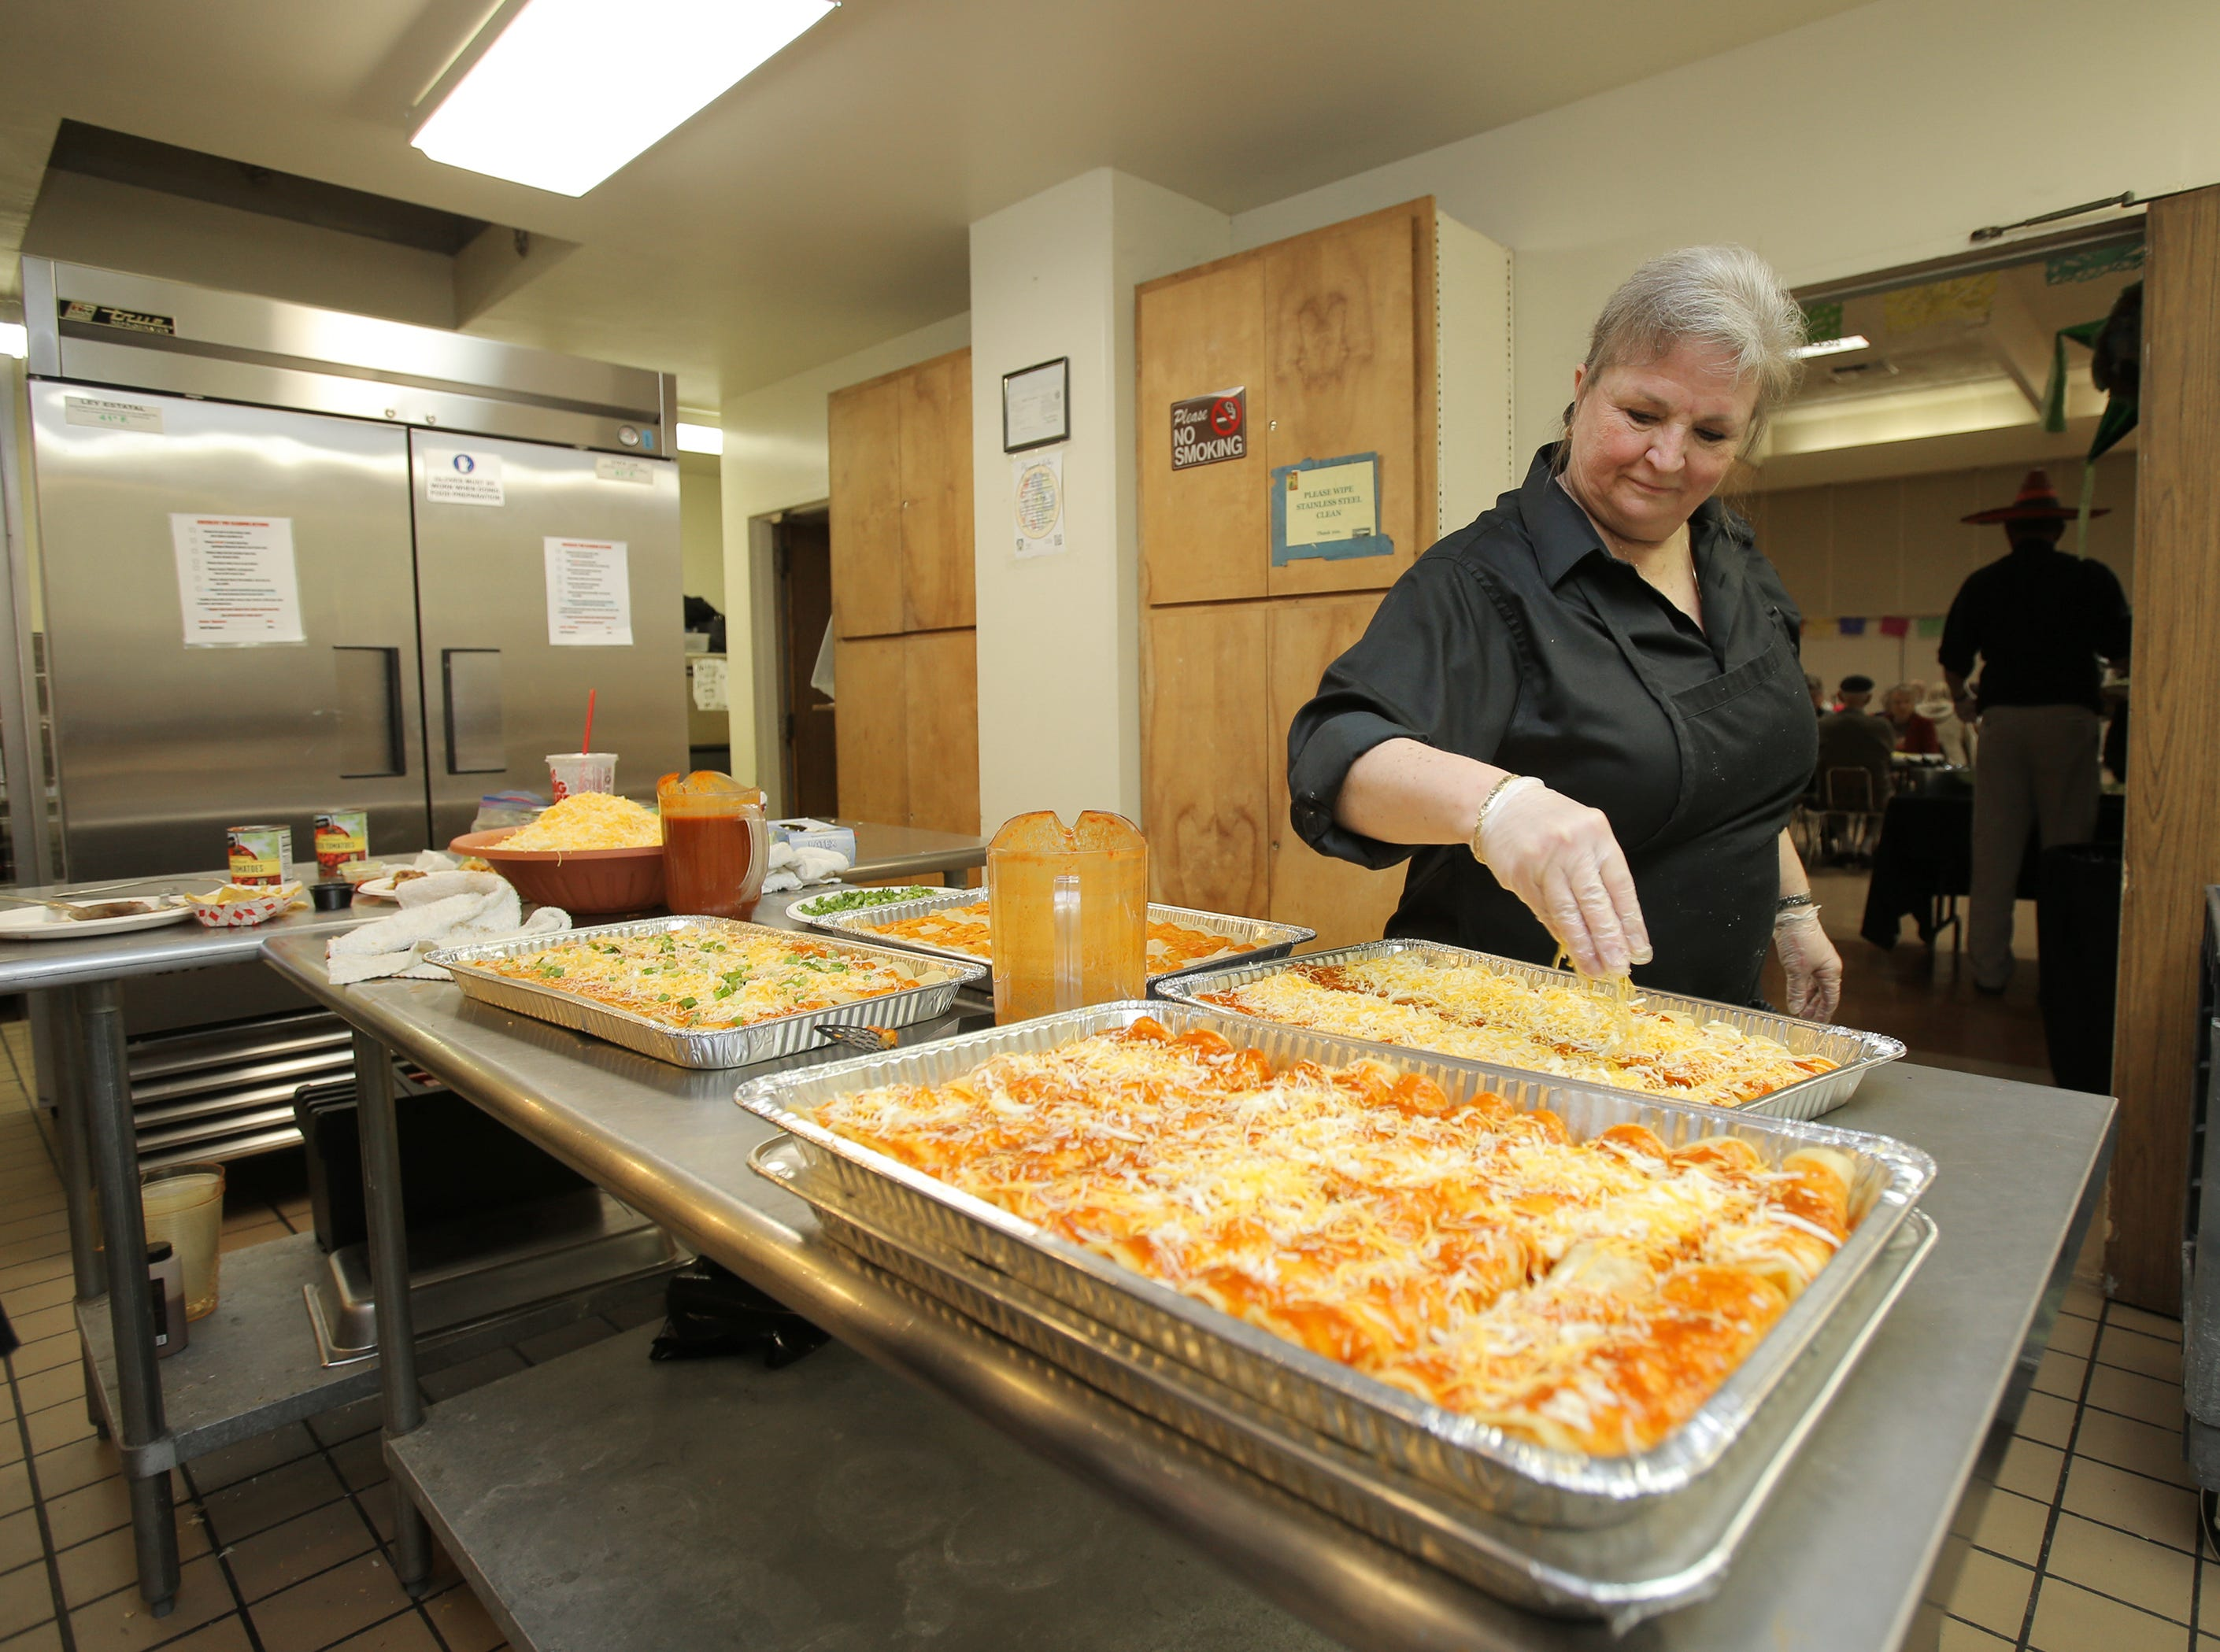 J Funk, of May's Kitchen, adds the final layer of cheese to a tray of enchiladas during the annual Viva la Comida Dinner and Fiesta fundraiser hosted by the Rotary Club of Camarillo on Monday at the Camarillo Community Center. All of the money raised goes toward scholarships and local charities, included the Boys & Girls Club.